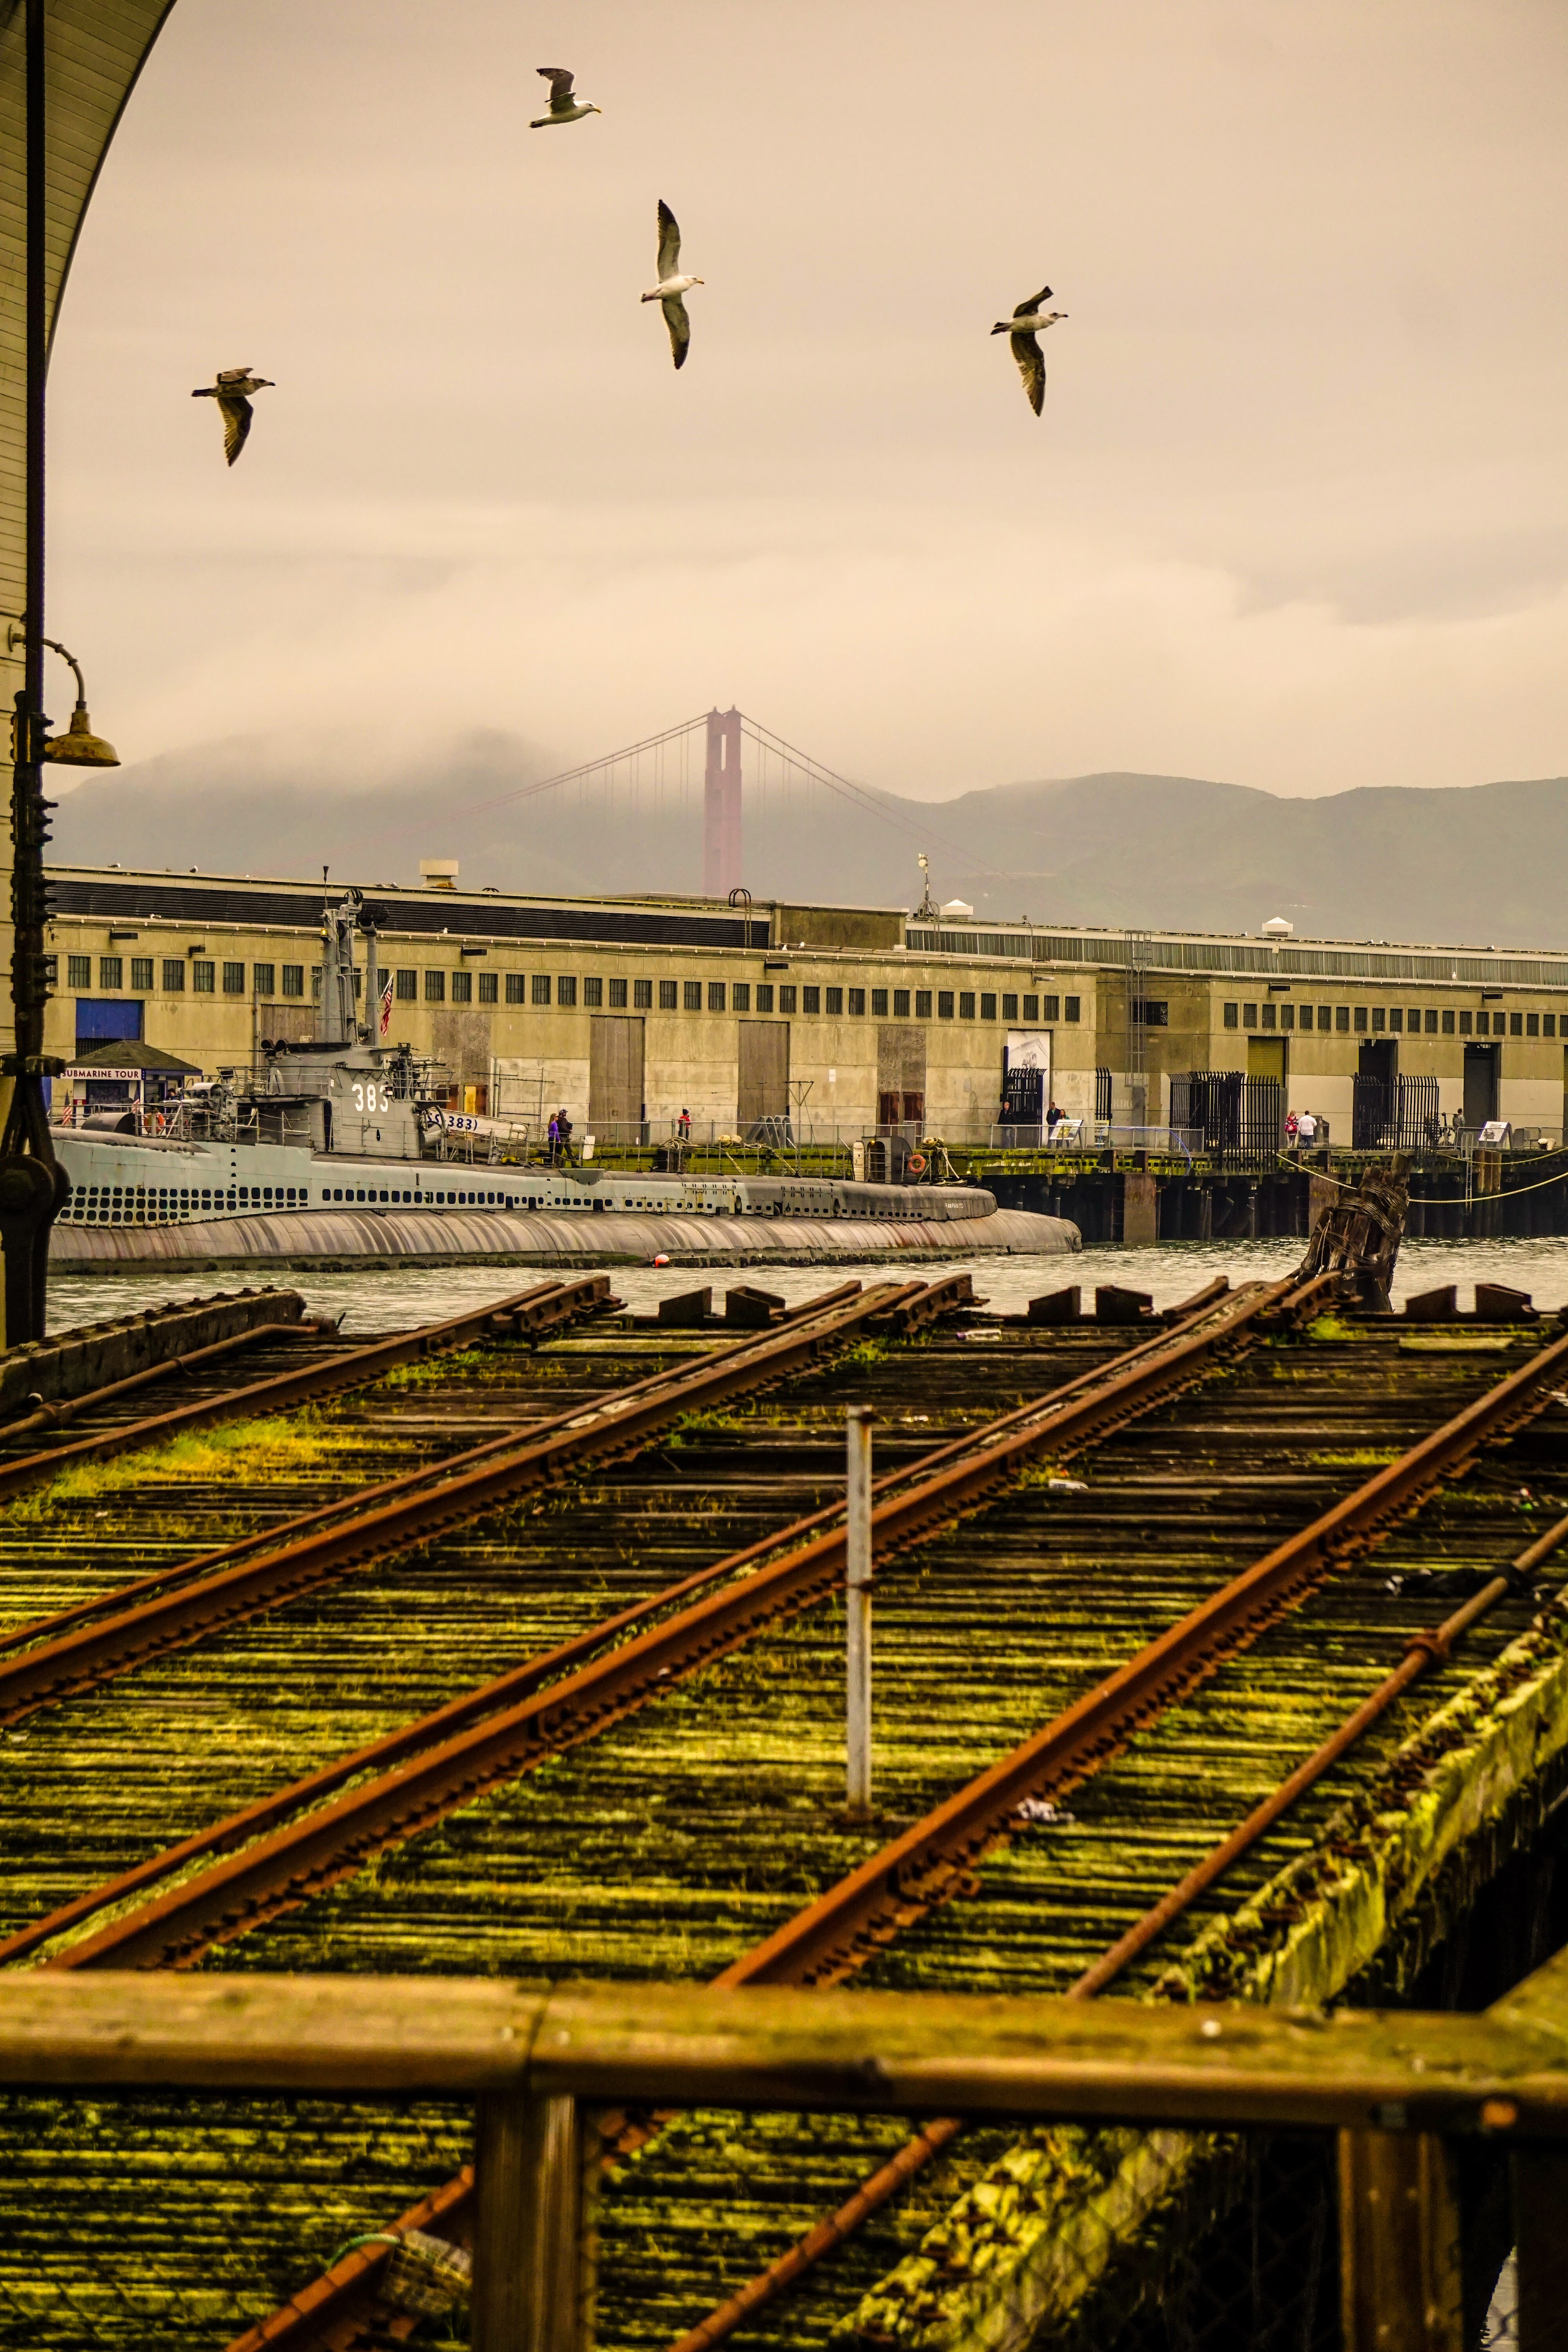 Golden Gate From Embarcadero, Birds, Boats, Gate, Golden, HQ Photo